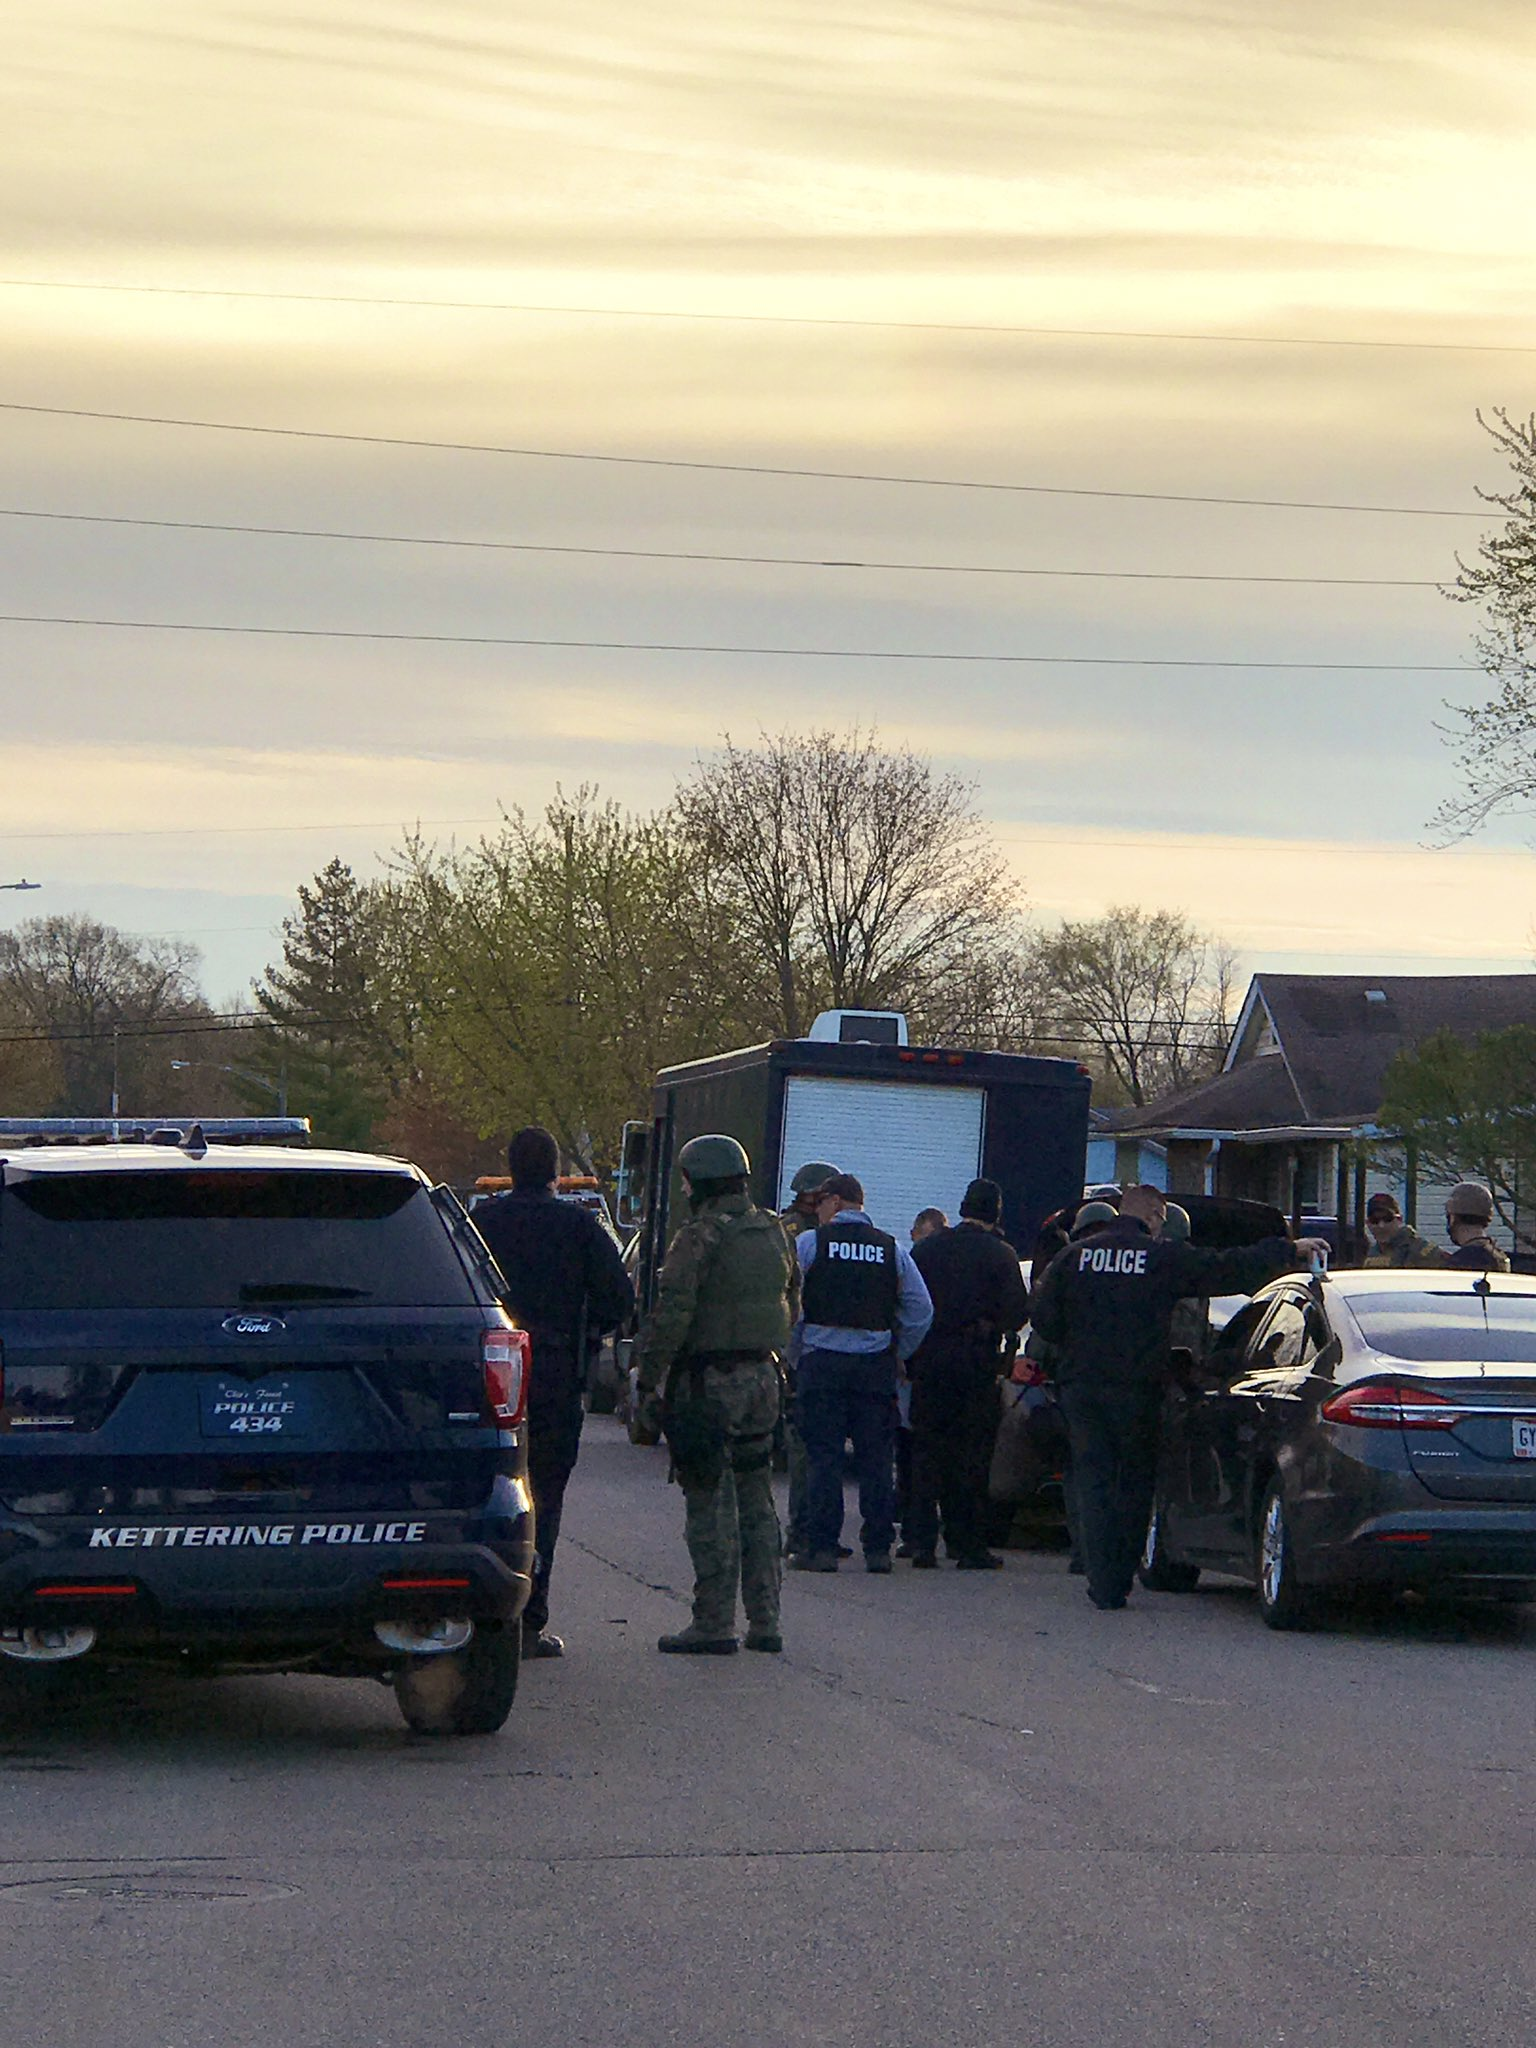 Police: Kettering chase suspect now in standoff with police in Harrison Twp. (WKEF/WRGT)